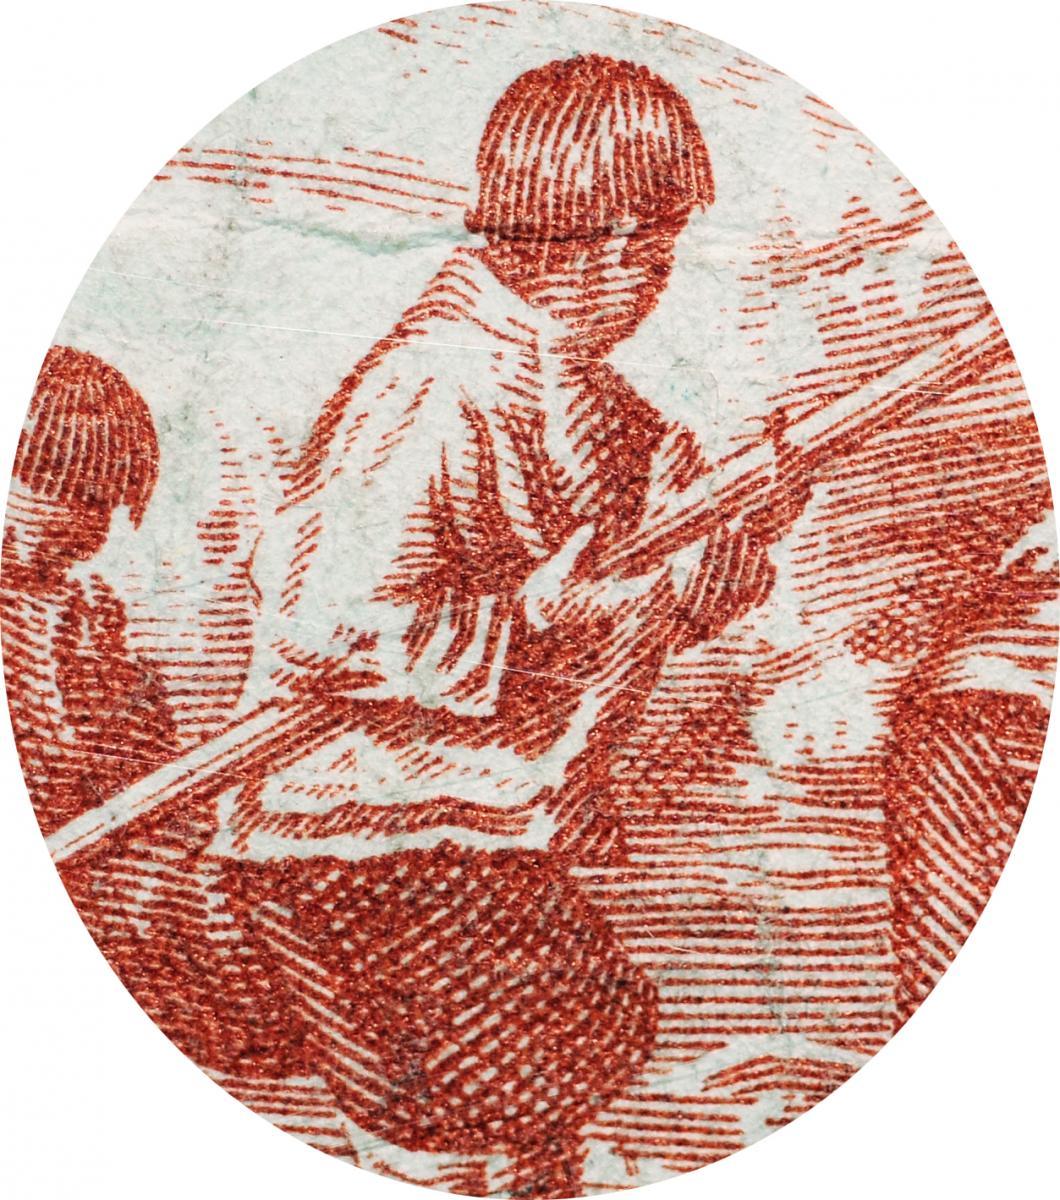 Engraving of man holding a harpoon.